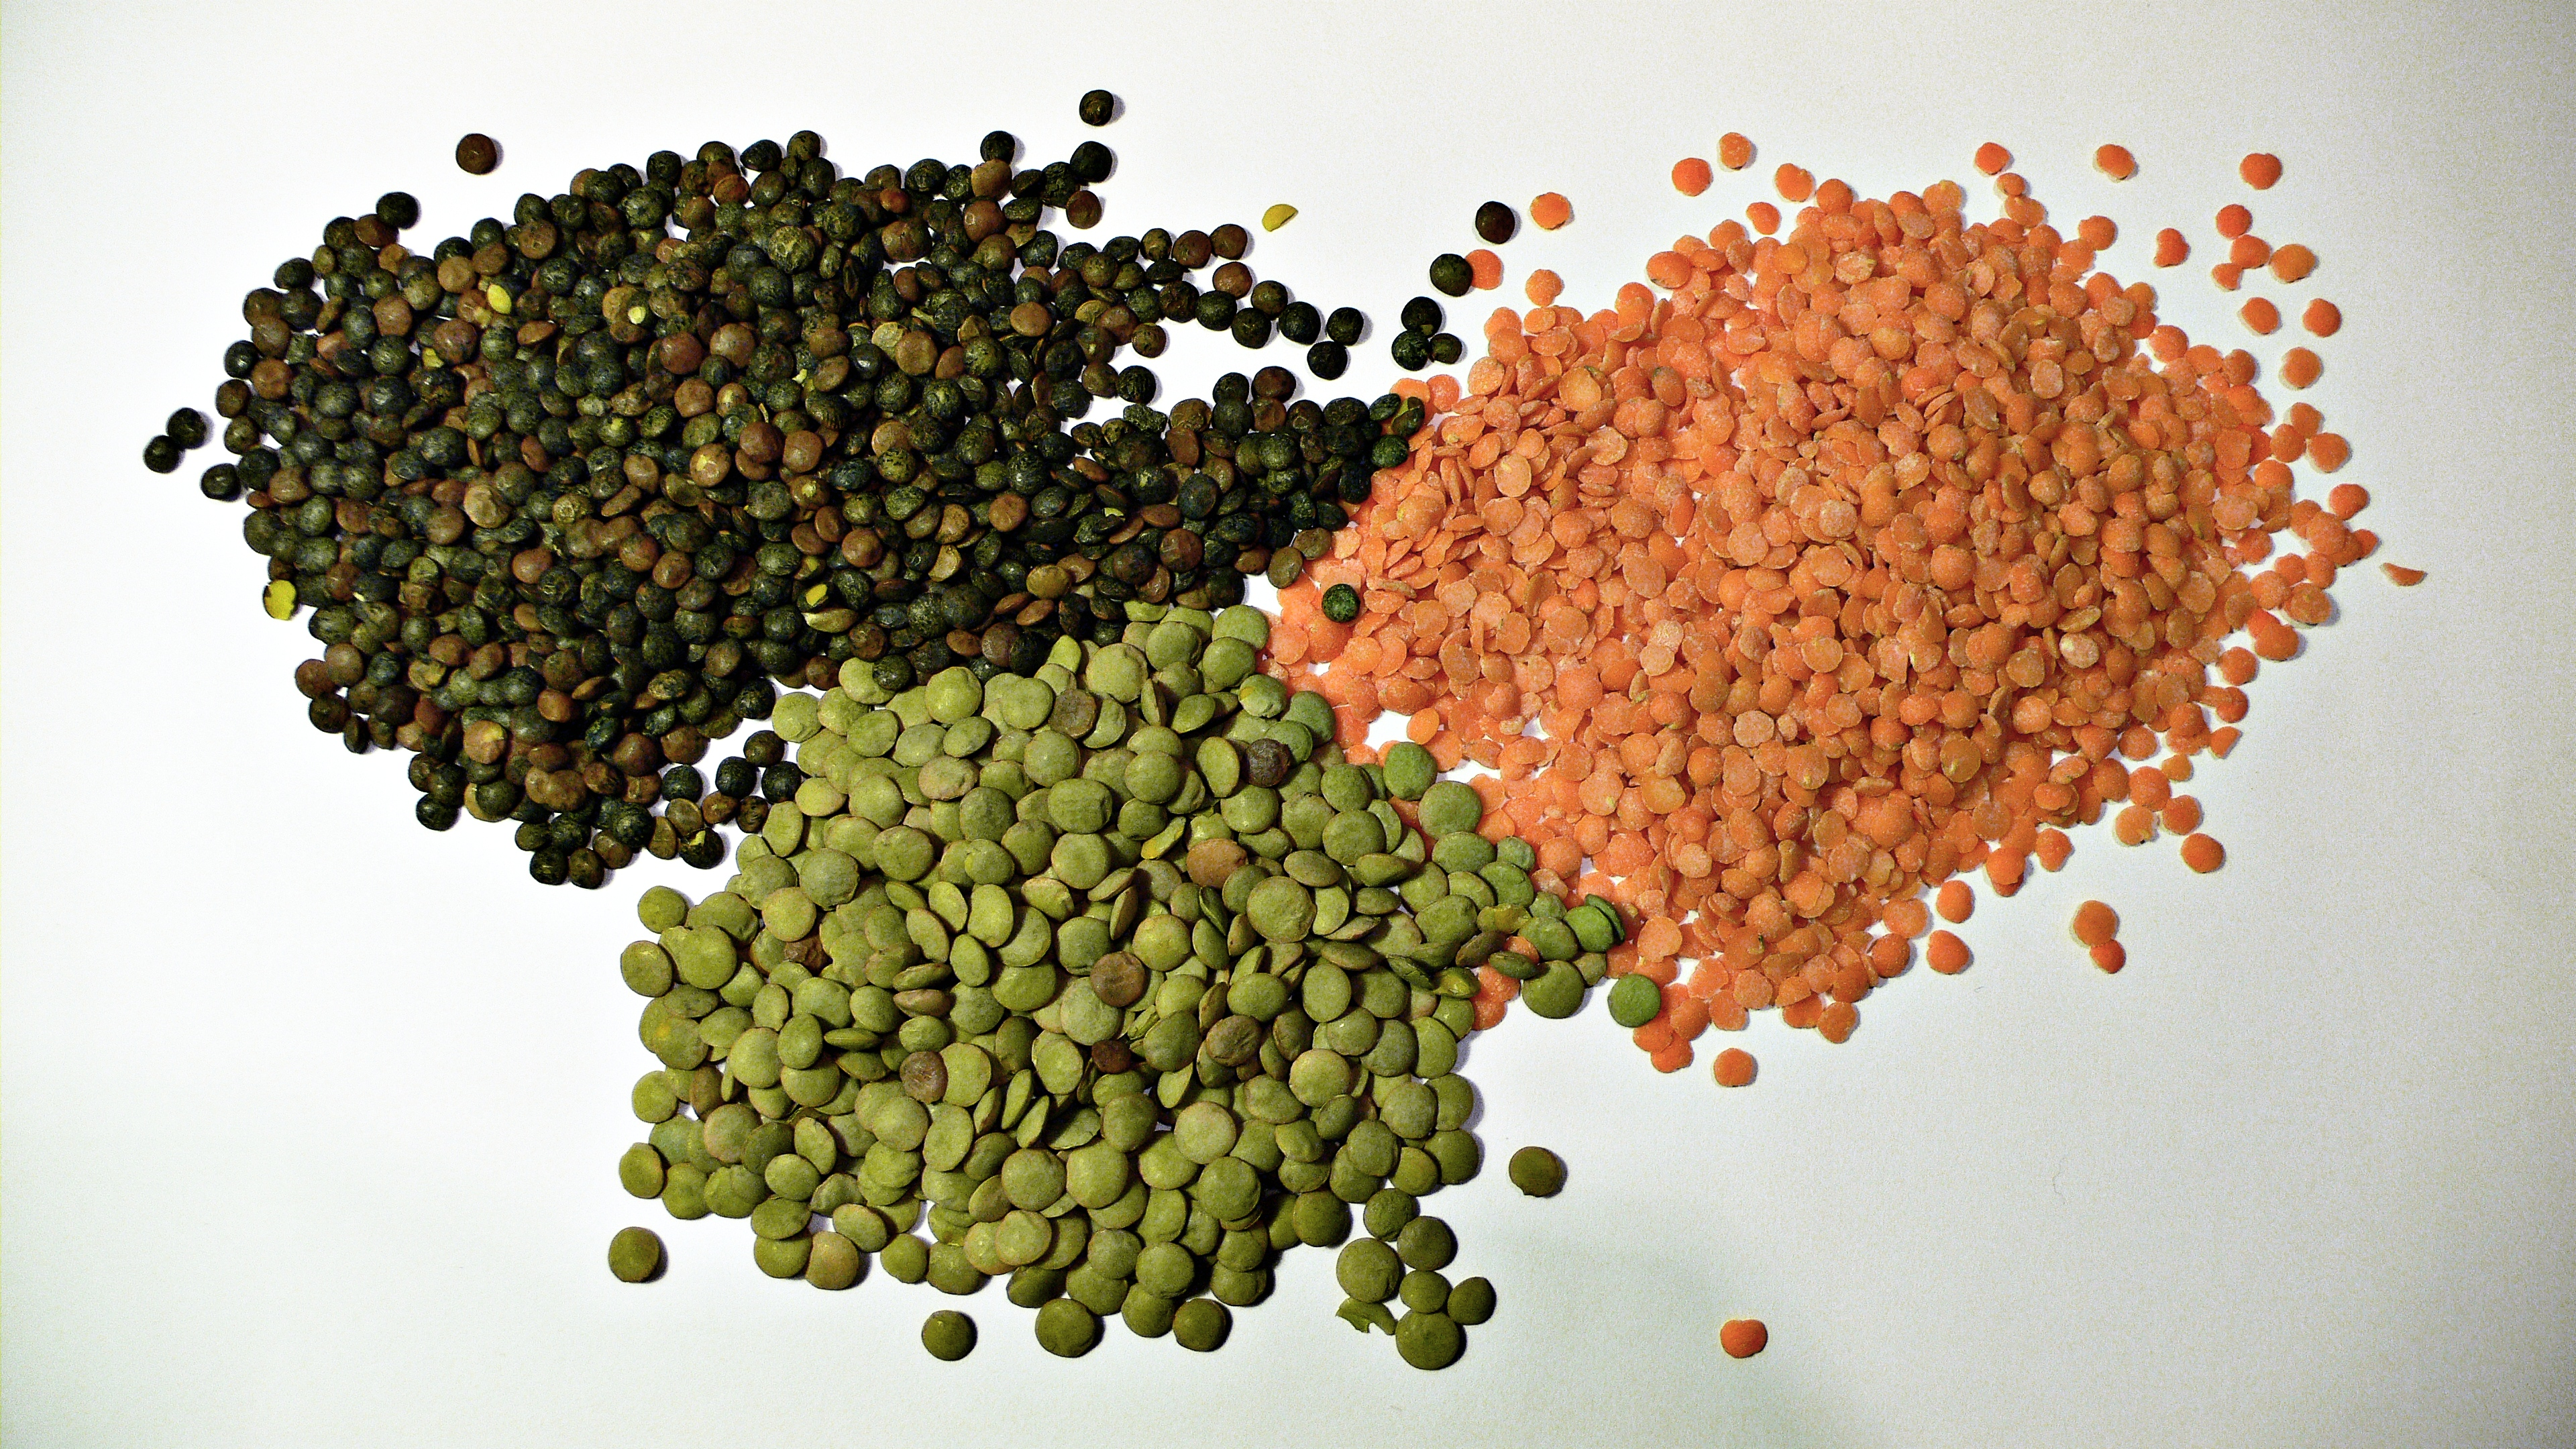 three varieties of lentil